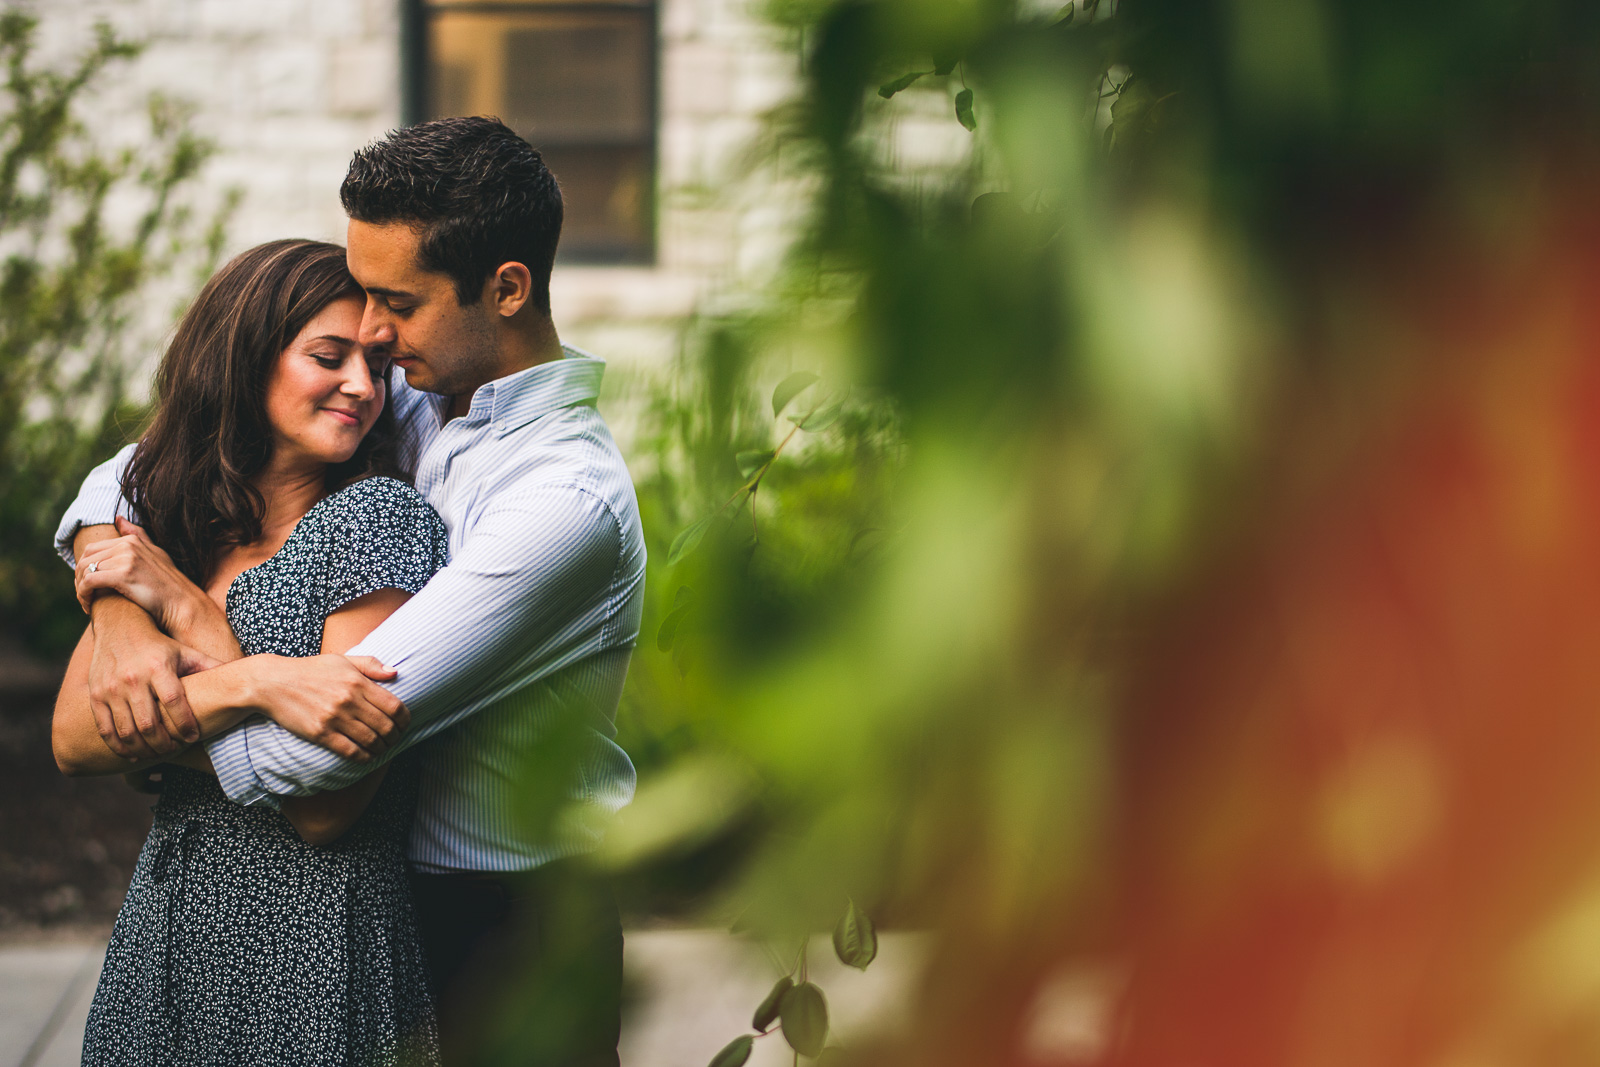 21 northwestern university engagement picture inspiration - Northwestern Engagement Photos // Emma + Francesco